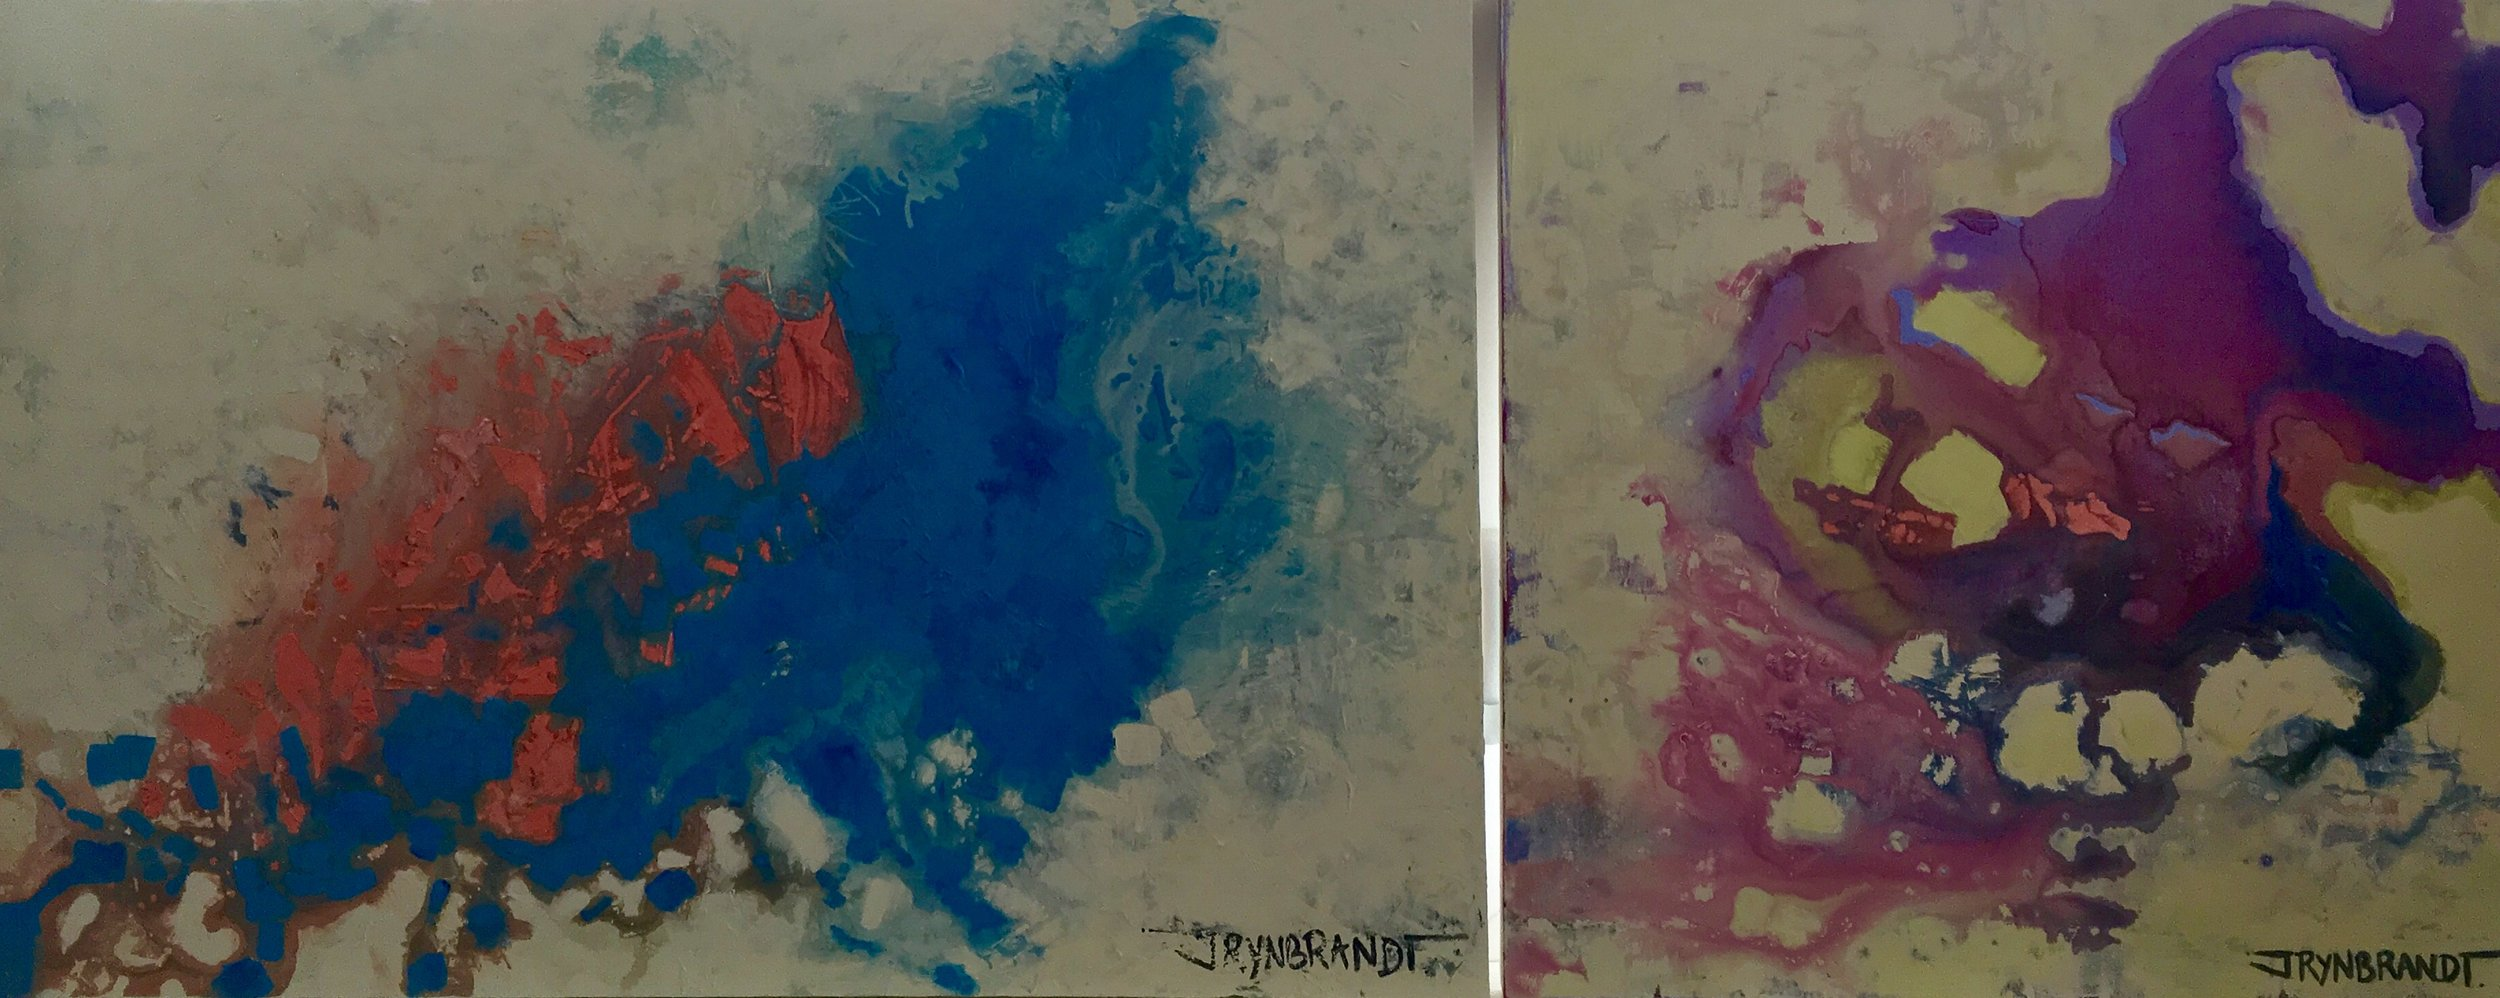 Notice the shades of blue and the sockeye hue on both pieces (although less predominant on the piece to the right).